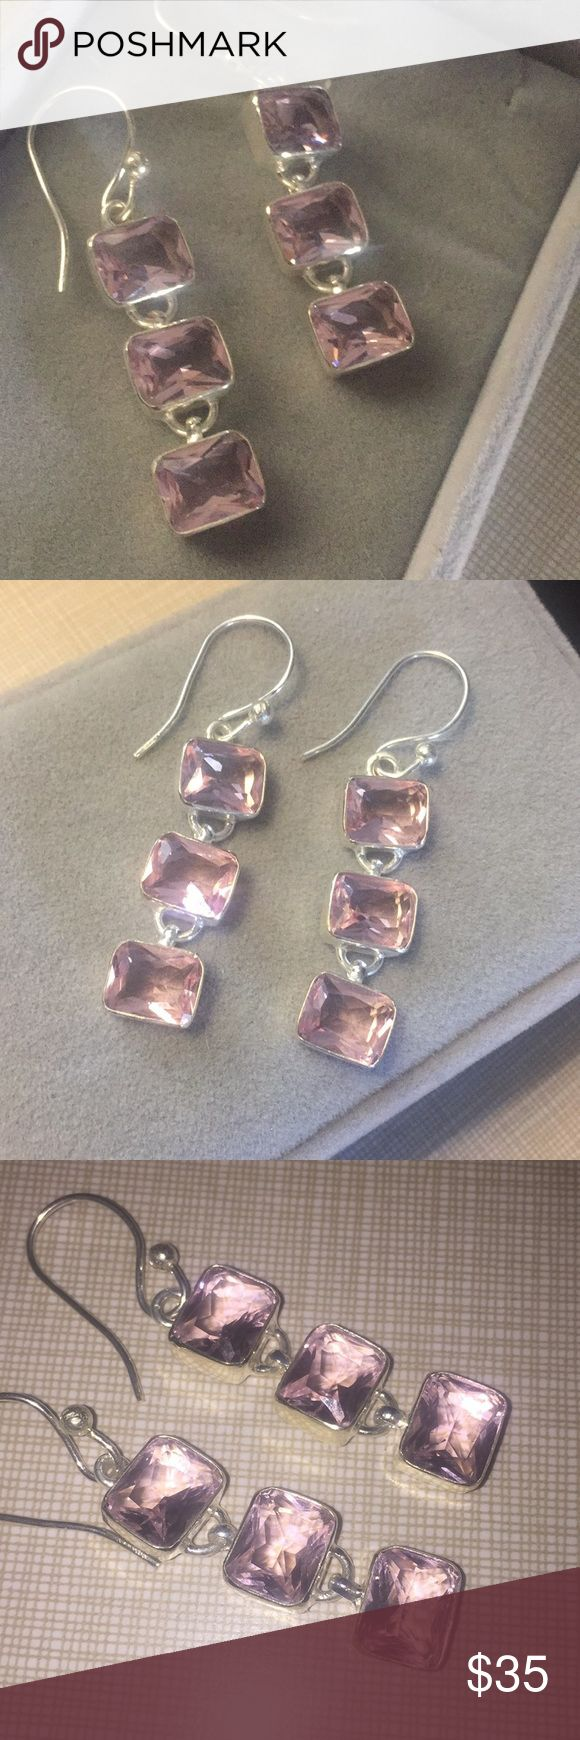 "Made in USA pink quartz sterling silver earrings Made in USA beautiful pink quartz party earrings classy elegant stylish silver stamped 925 dangle approximately 2""1/4long shepherds hook NWT Jewelry Earrings"